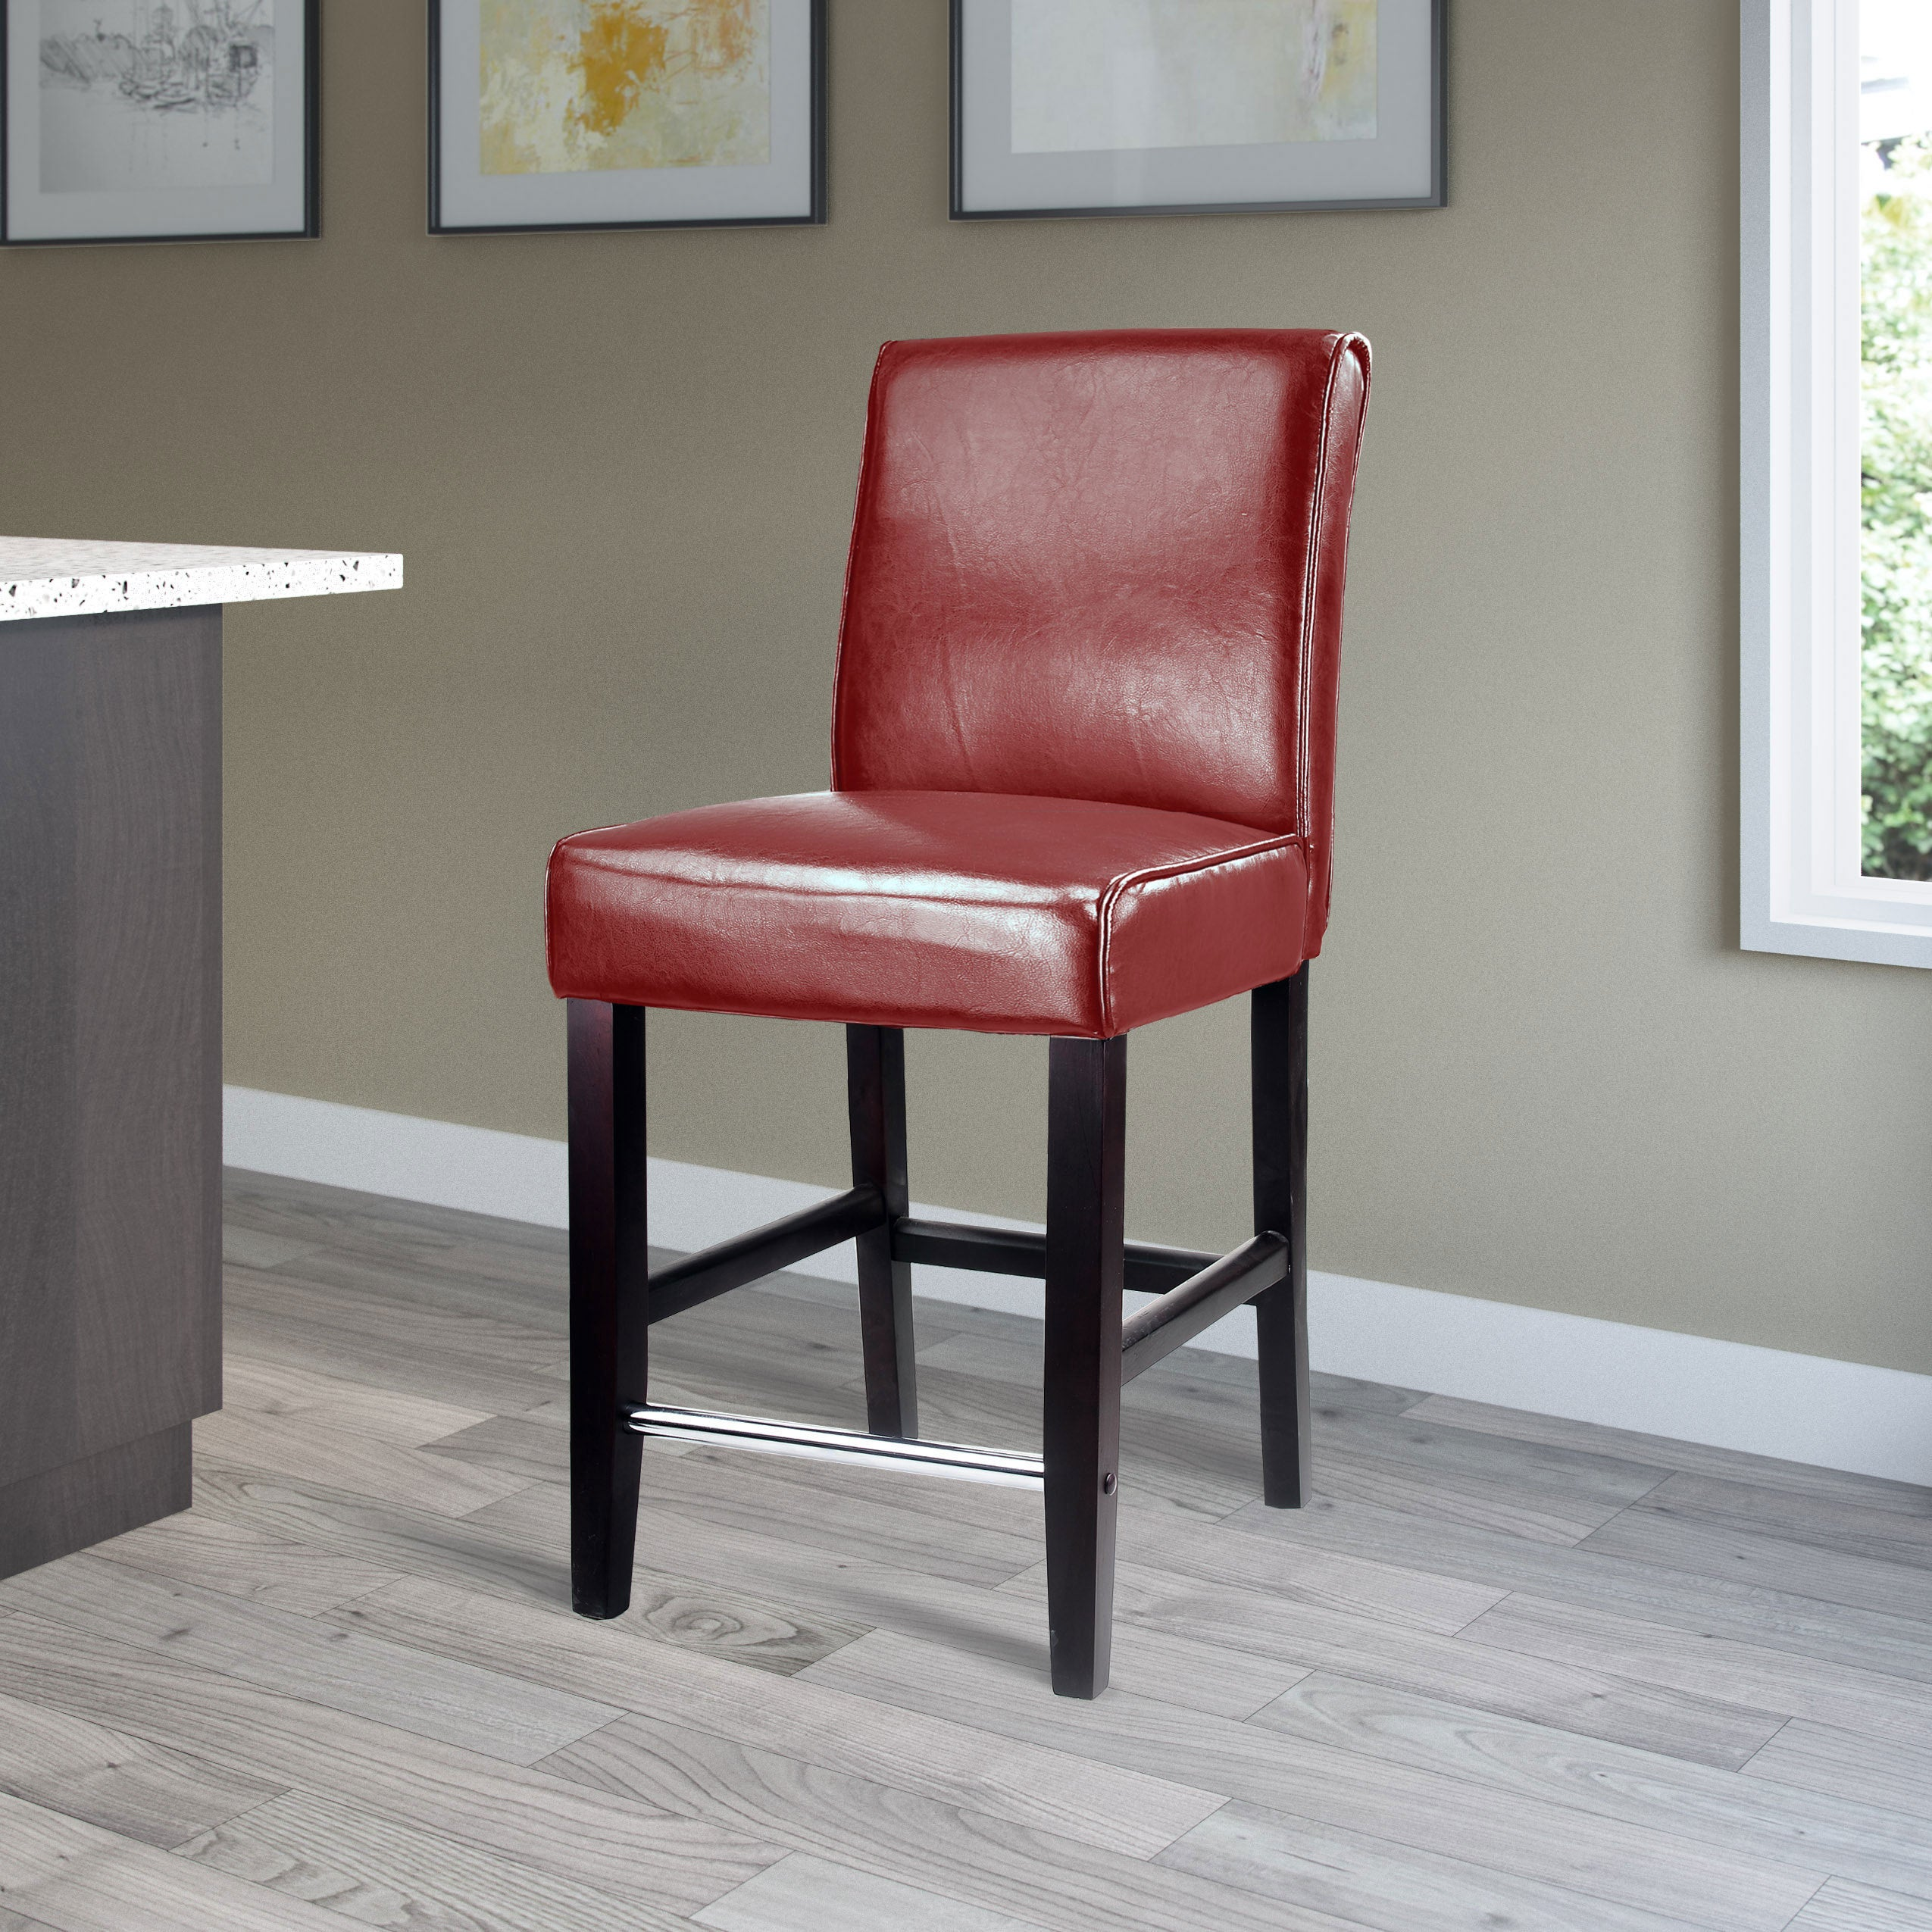 room bar depot the dining corliving of furniture bonded leather b stools n kitchen red set stool dad home